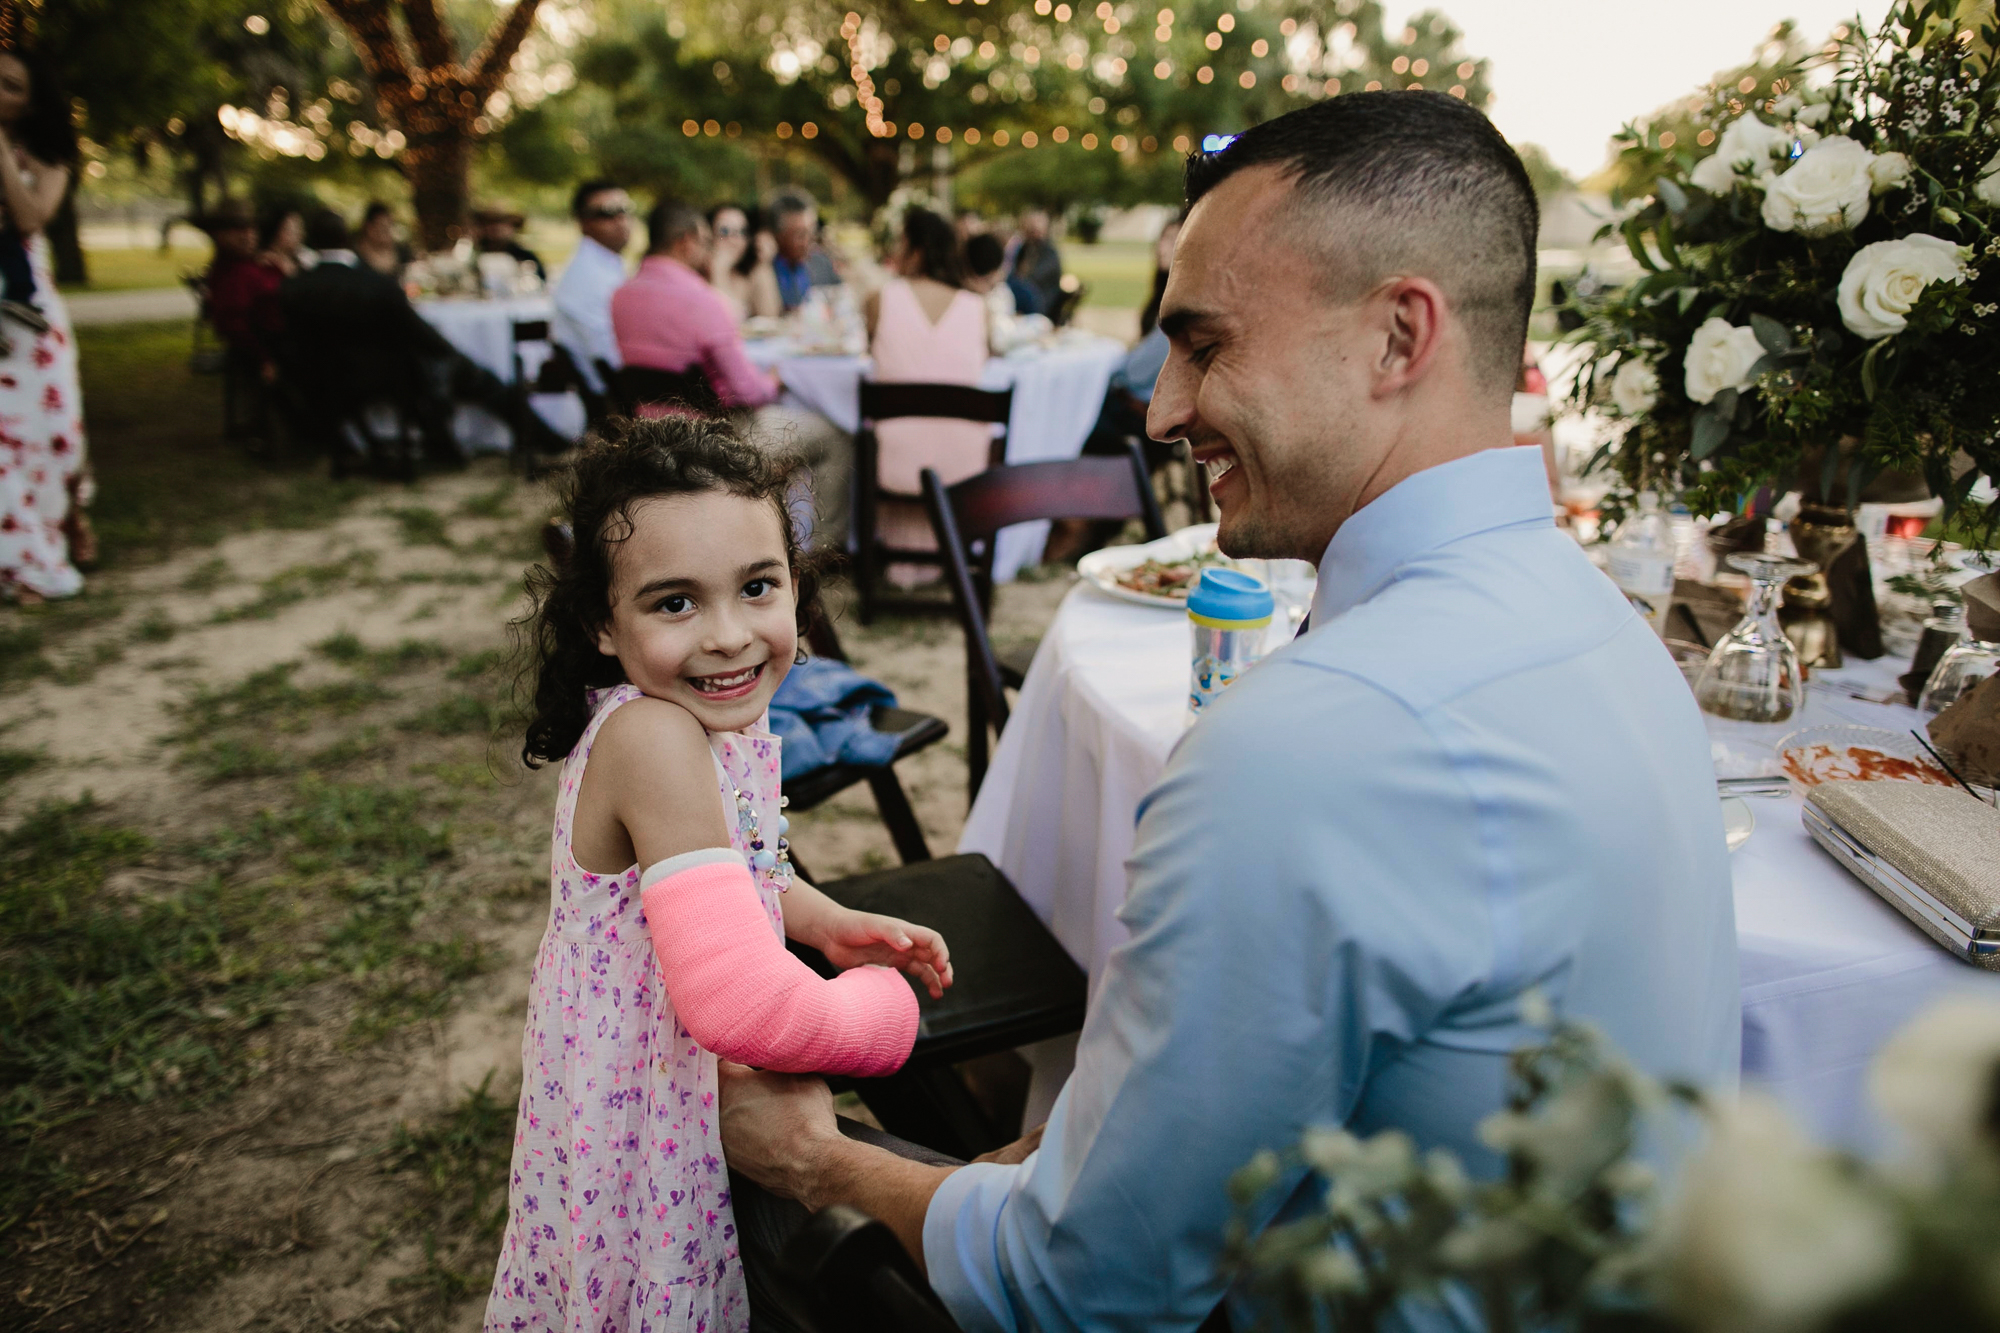 alfonso_flores_destination_wedding_photography_rancho_la_pergola_brownsville_texas71.jpg